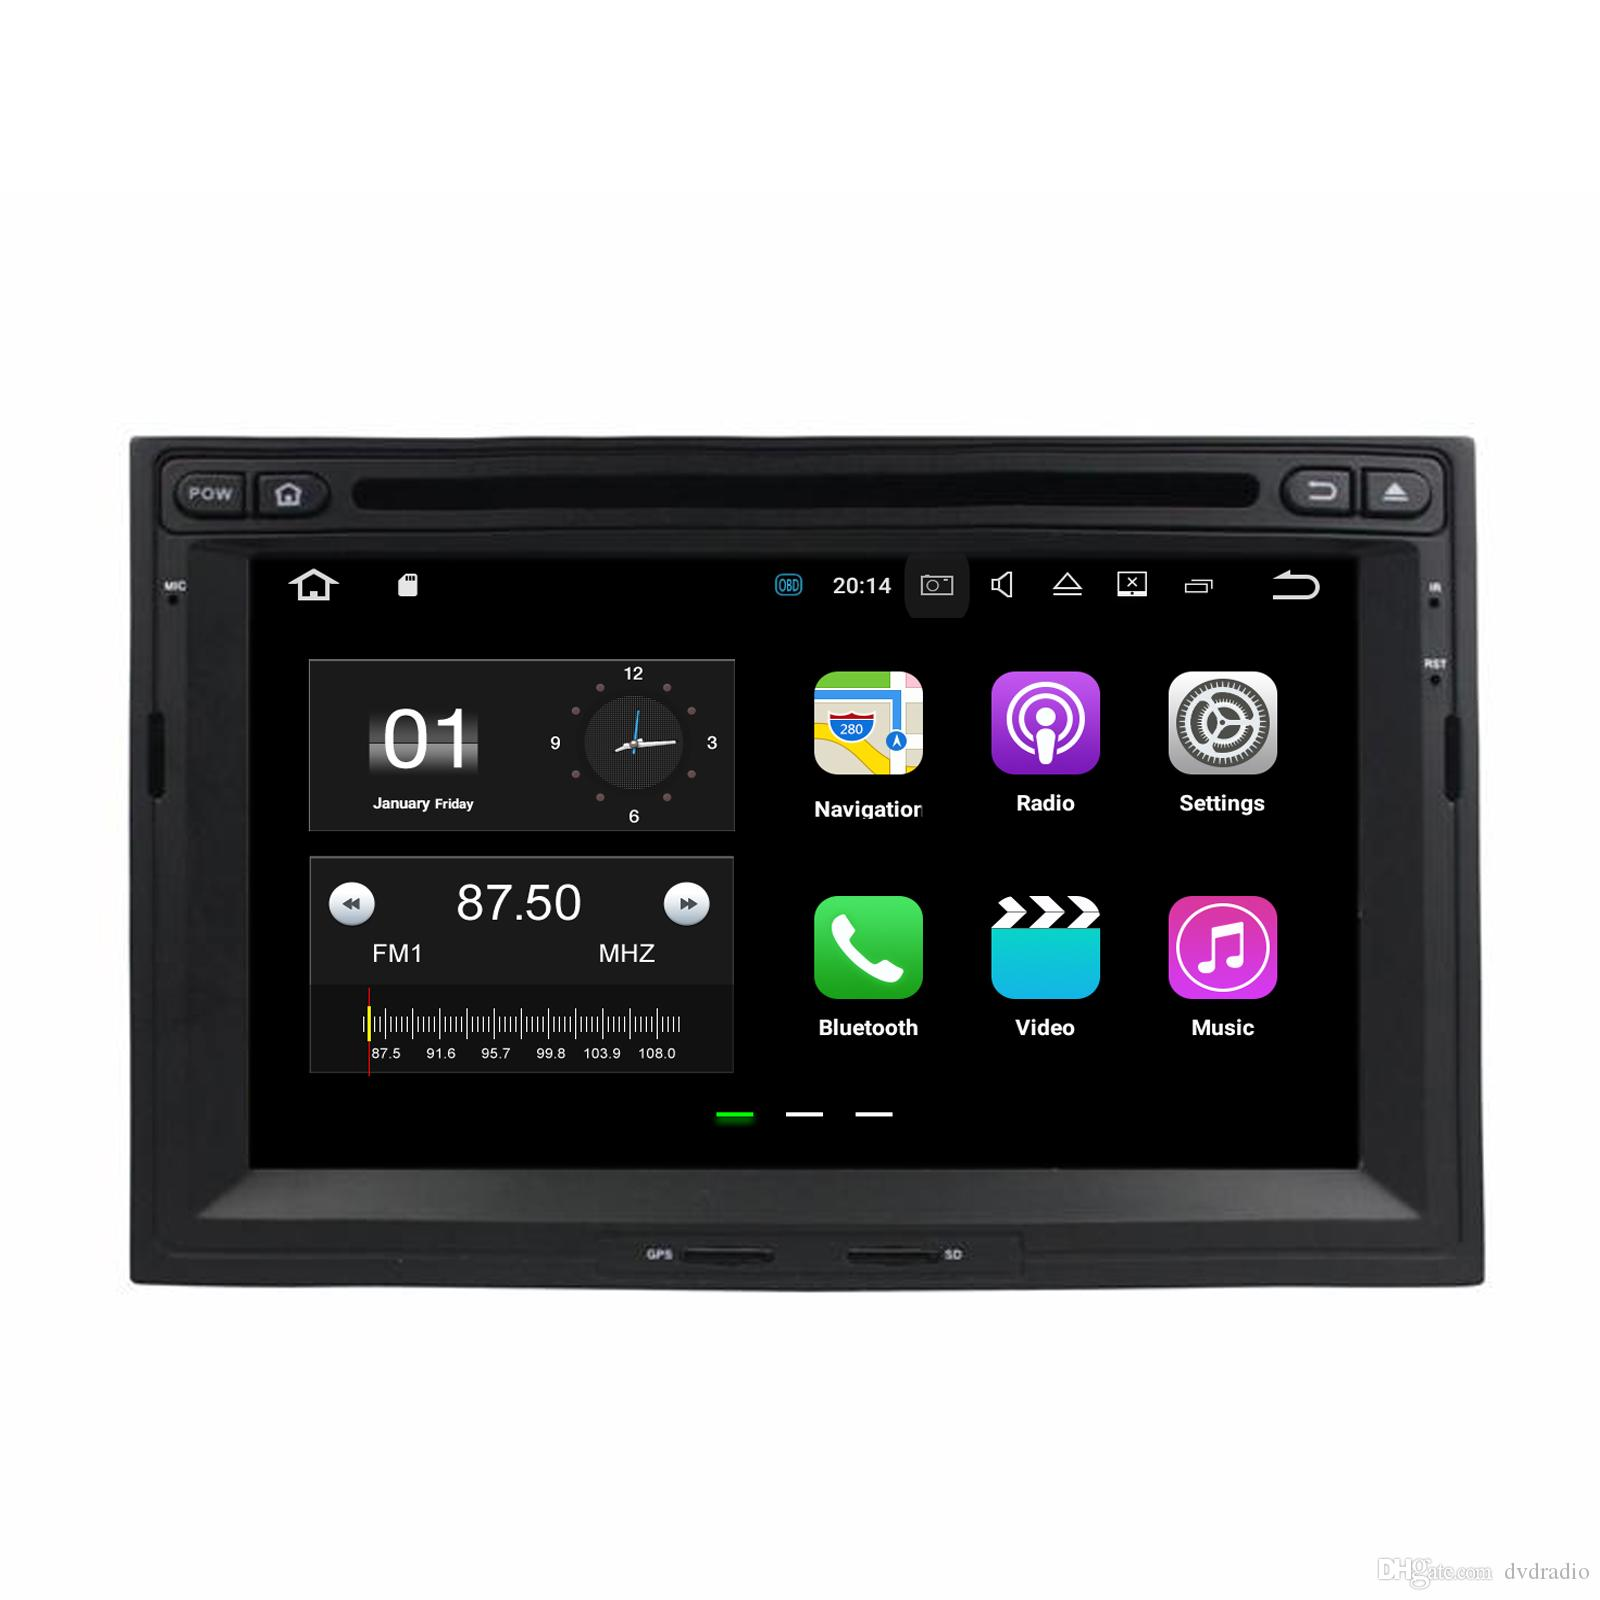 android 7 1 system car dvd player for peugeot 3008 5008 partner gps rh dhgate com Peugeot 207 Peugeot 3008 Cars UK